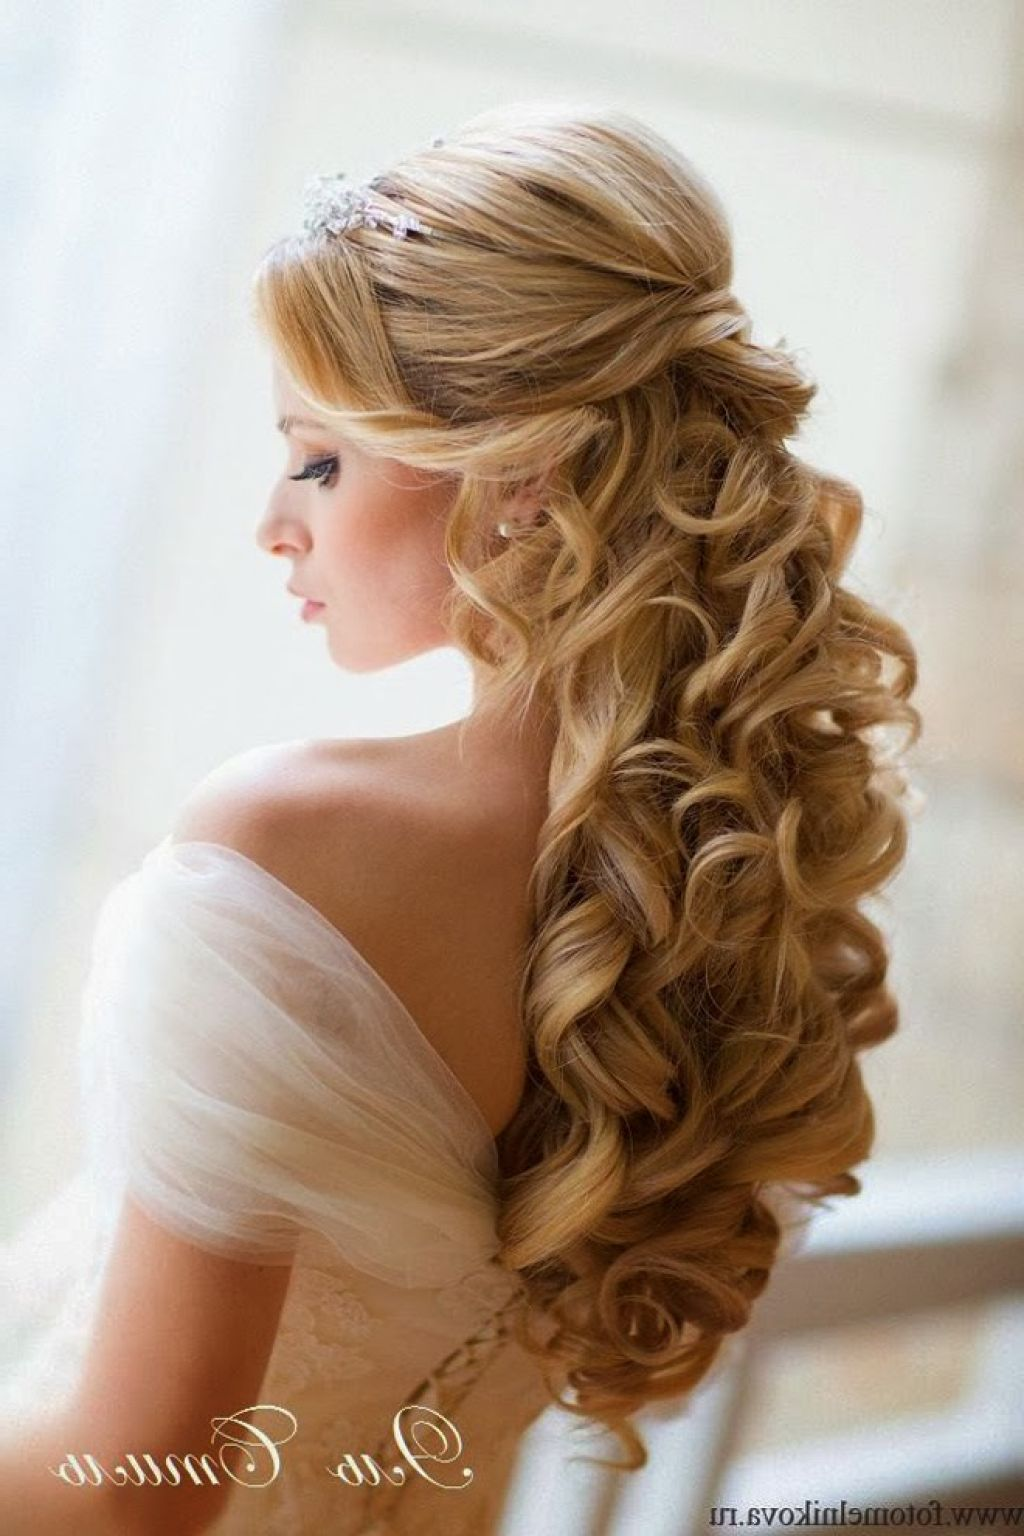 Pleasing 1000 Images About Wedding Hair On Pinterest Wedding Hairstyles Hairstyles For Women Draintrainus